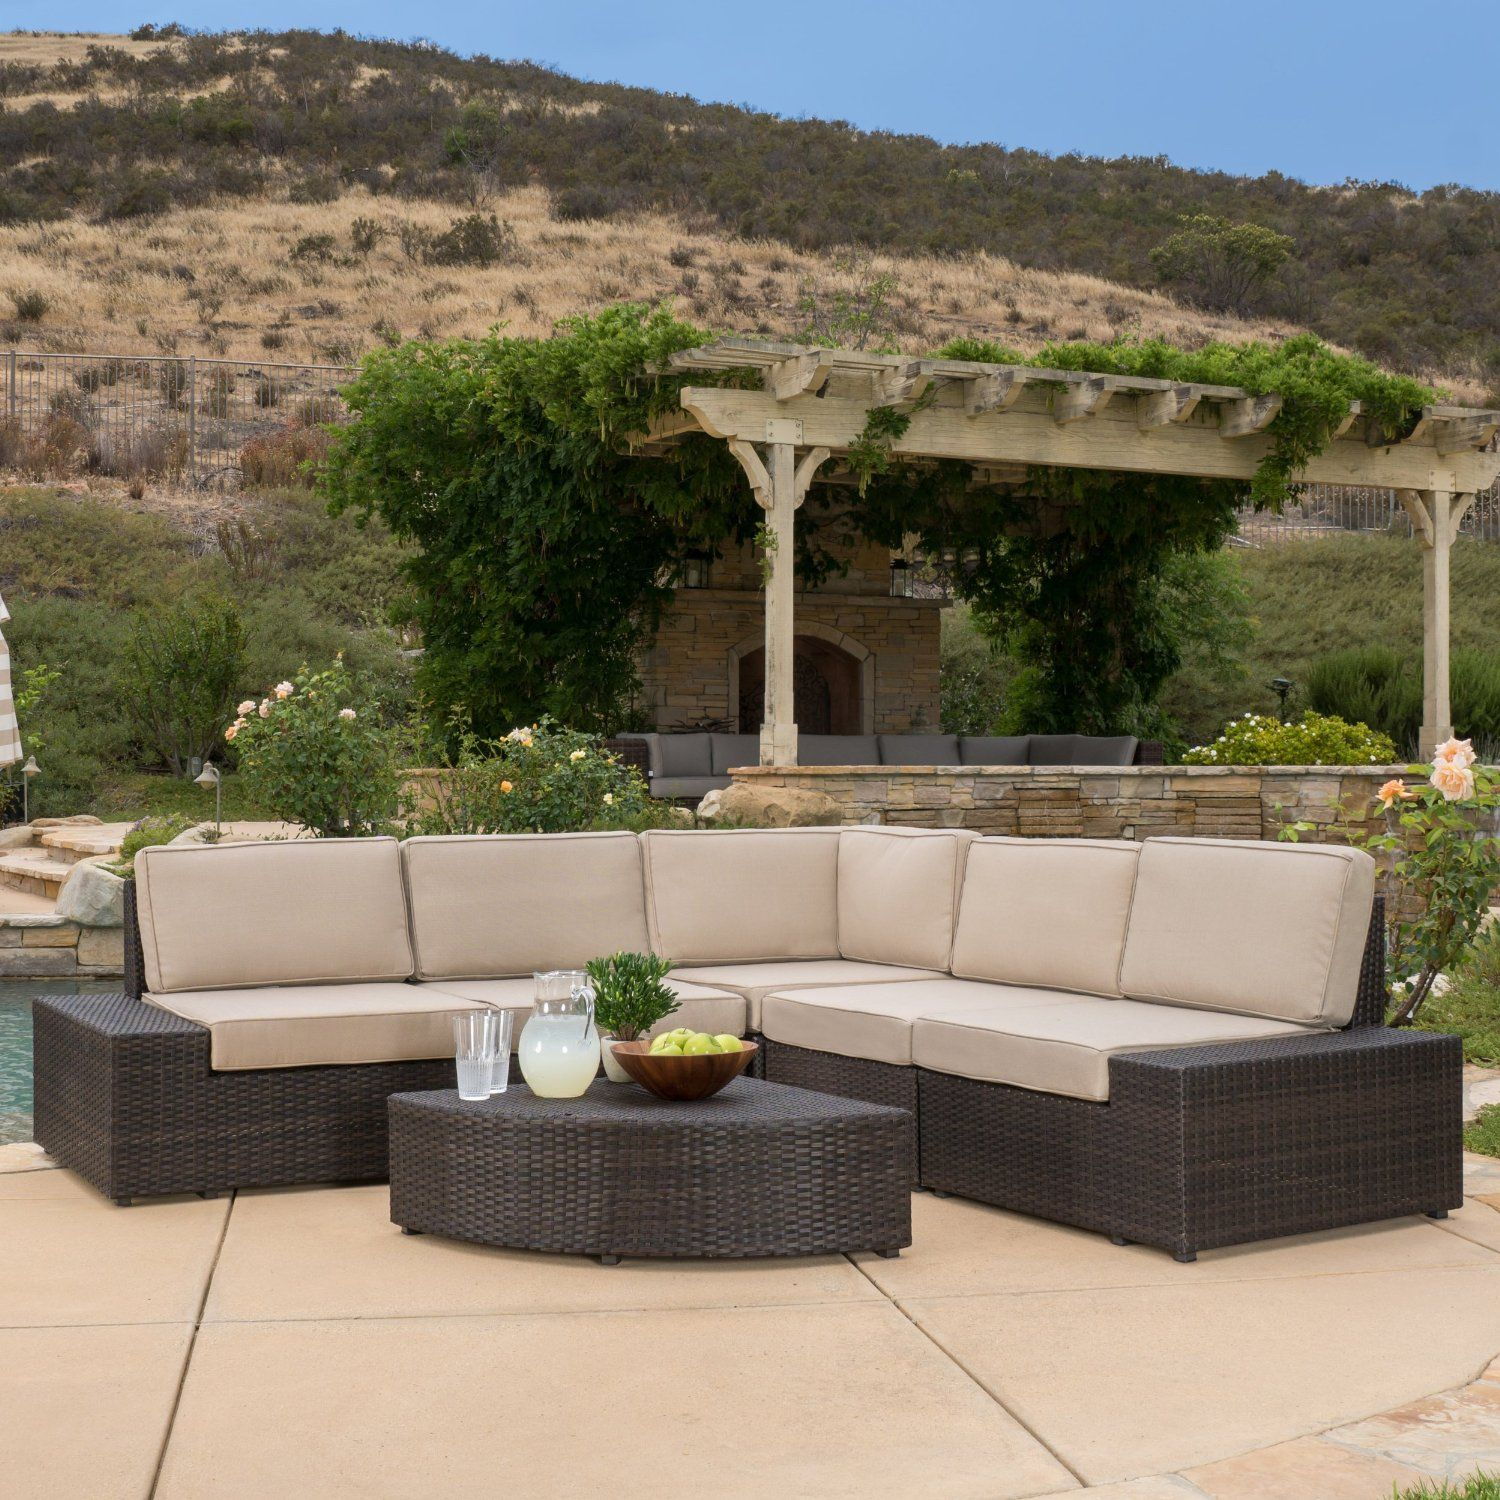 Luxury Wicker Patio Set Clearance